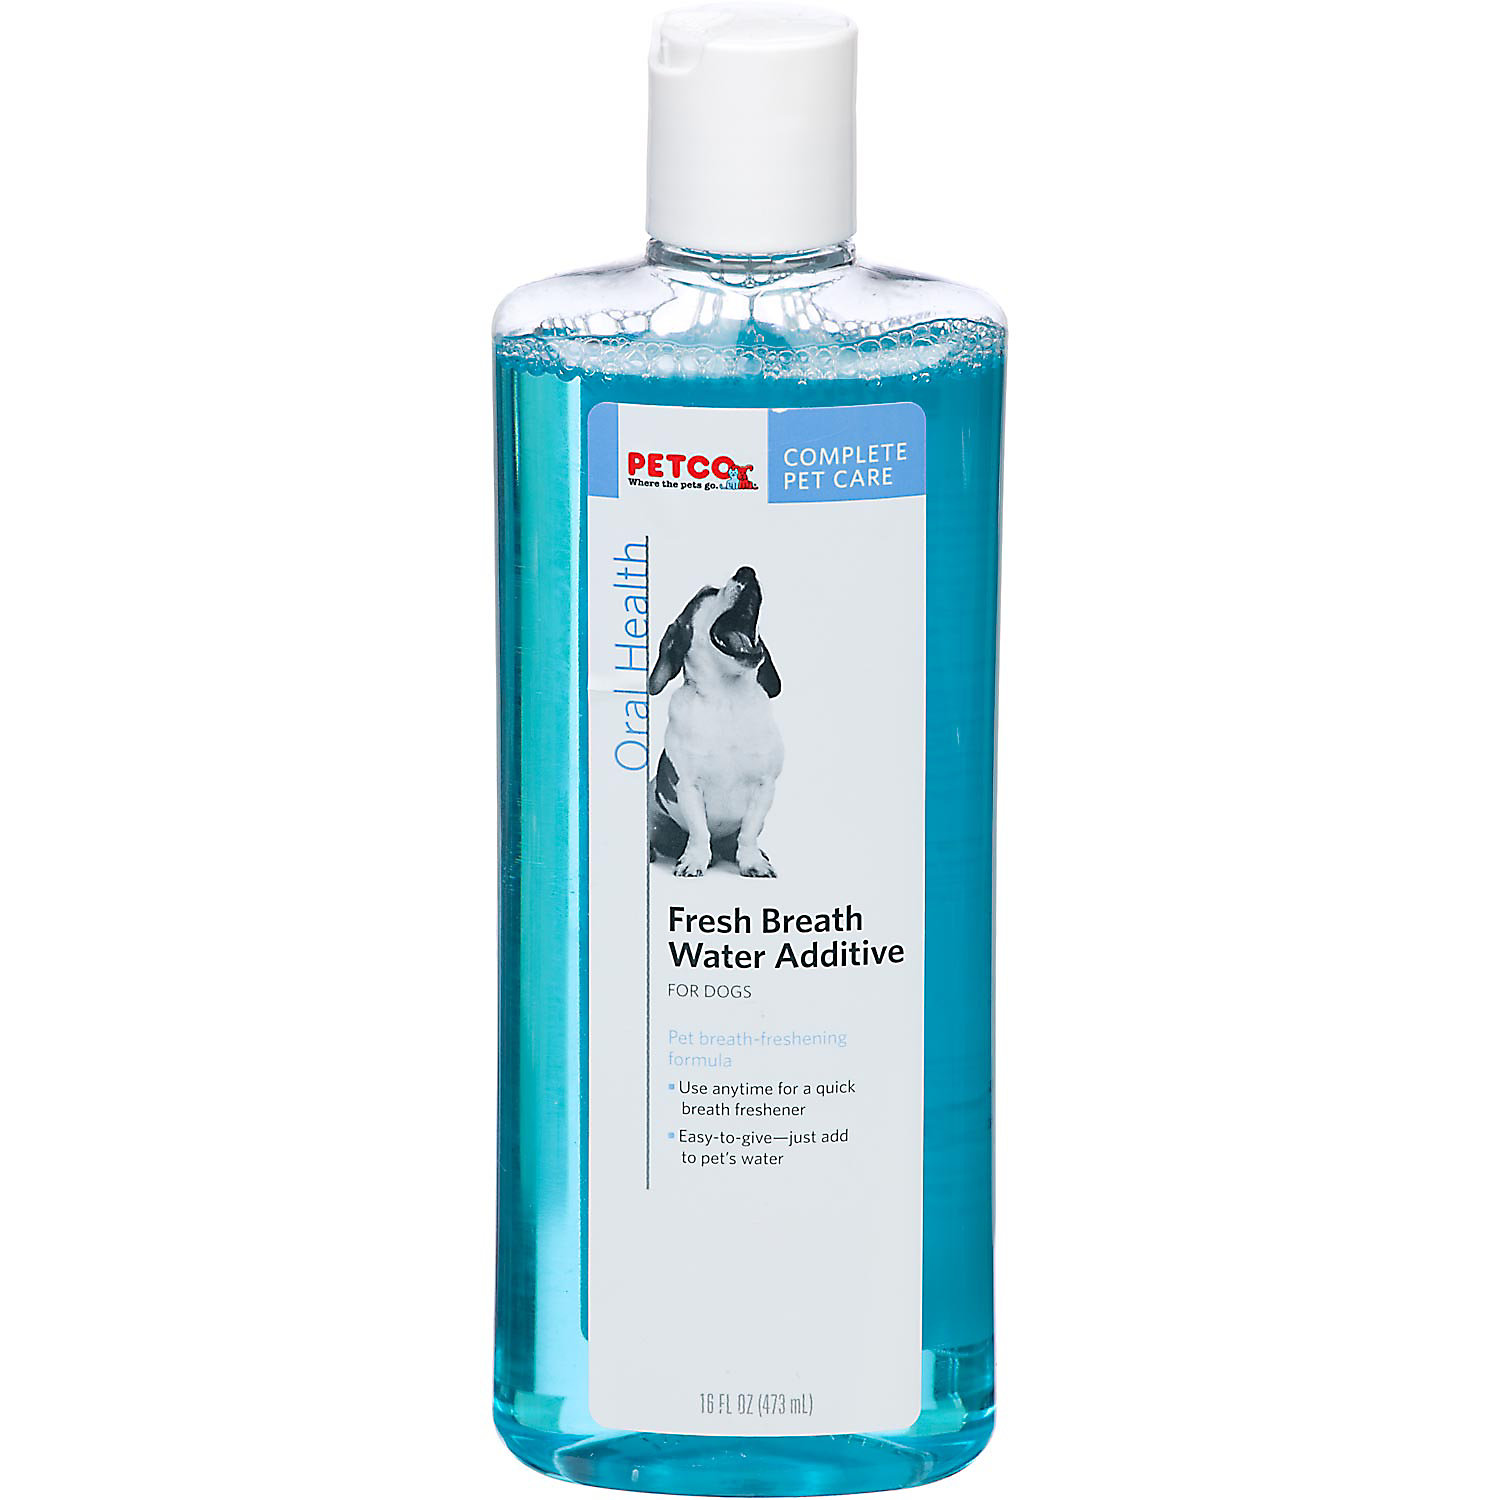 Petco Fresh Breath Water Additive for Dogs